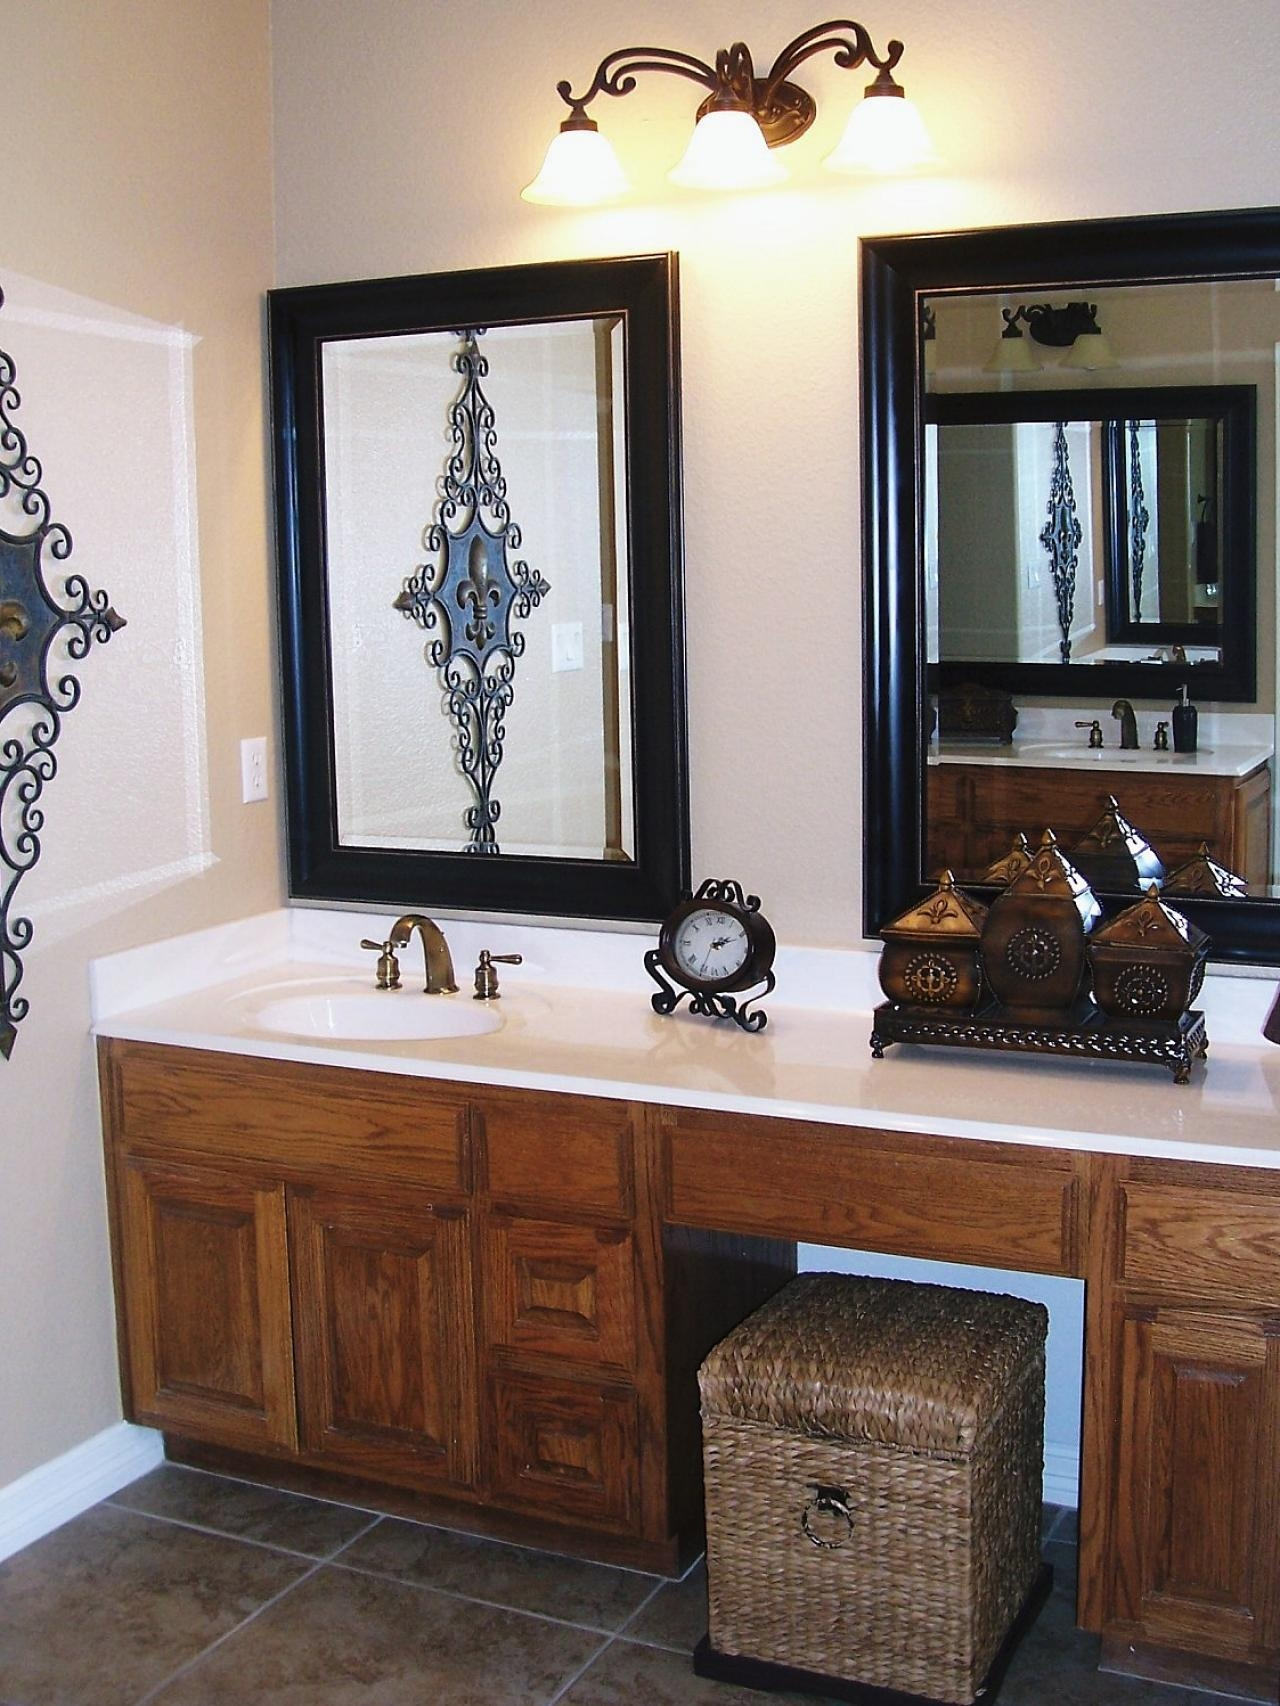 Bathroom Vanity Mirrors | Hgtv Throughout Bathroom Vanities Mirrors (Image 9 of 20)